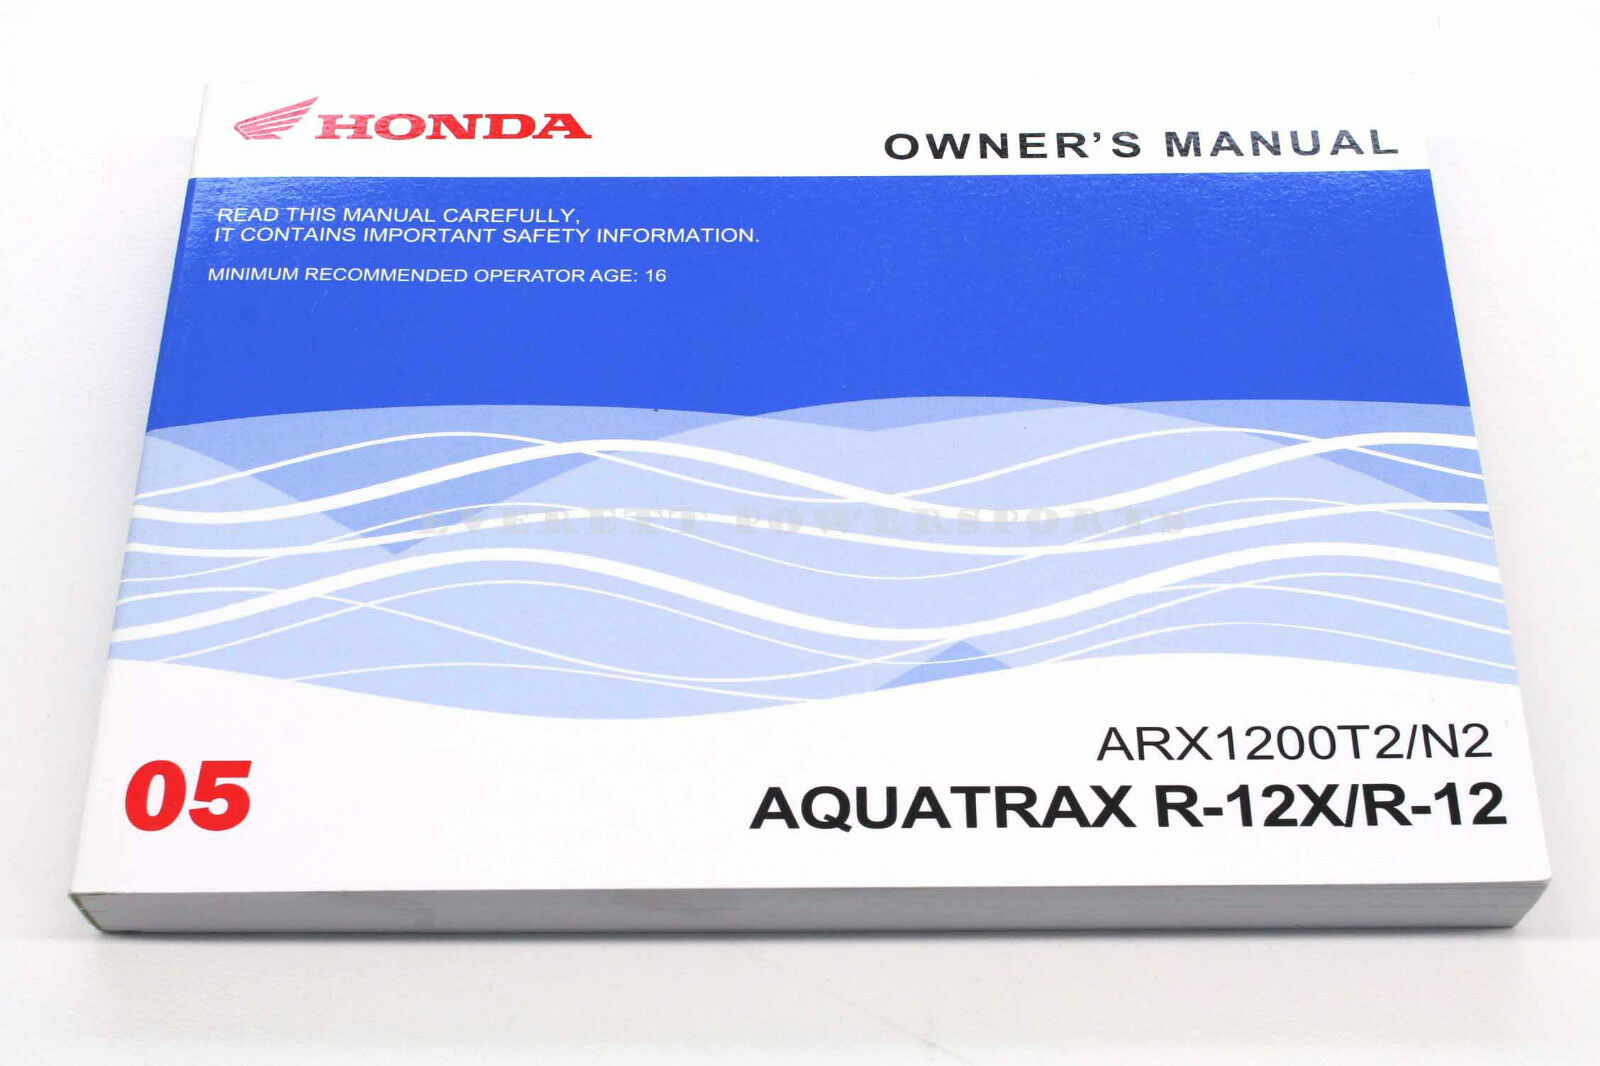 New Owners Manual Honda Aquatrax ARX1200 N2/T2 2005 Turbo and Non 2 Seater  # 1 of 2Only 3 available New Owners Manual Honda ...